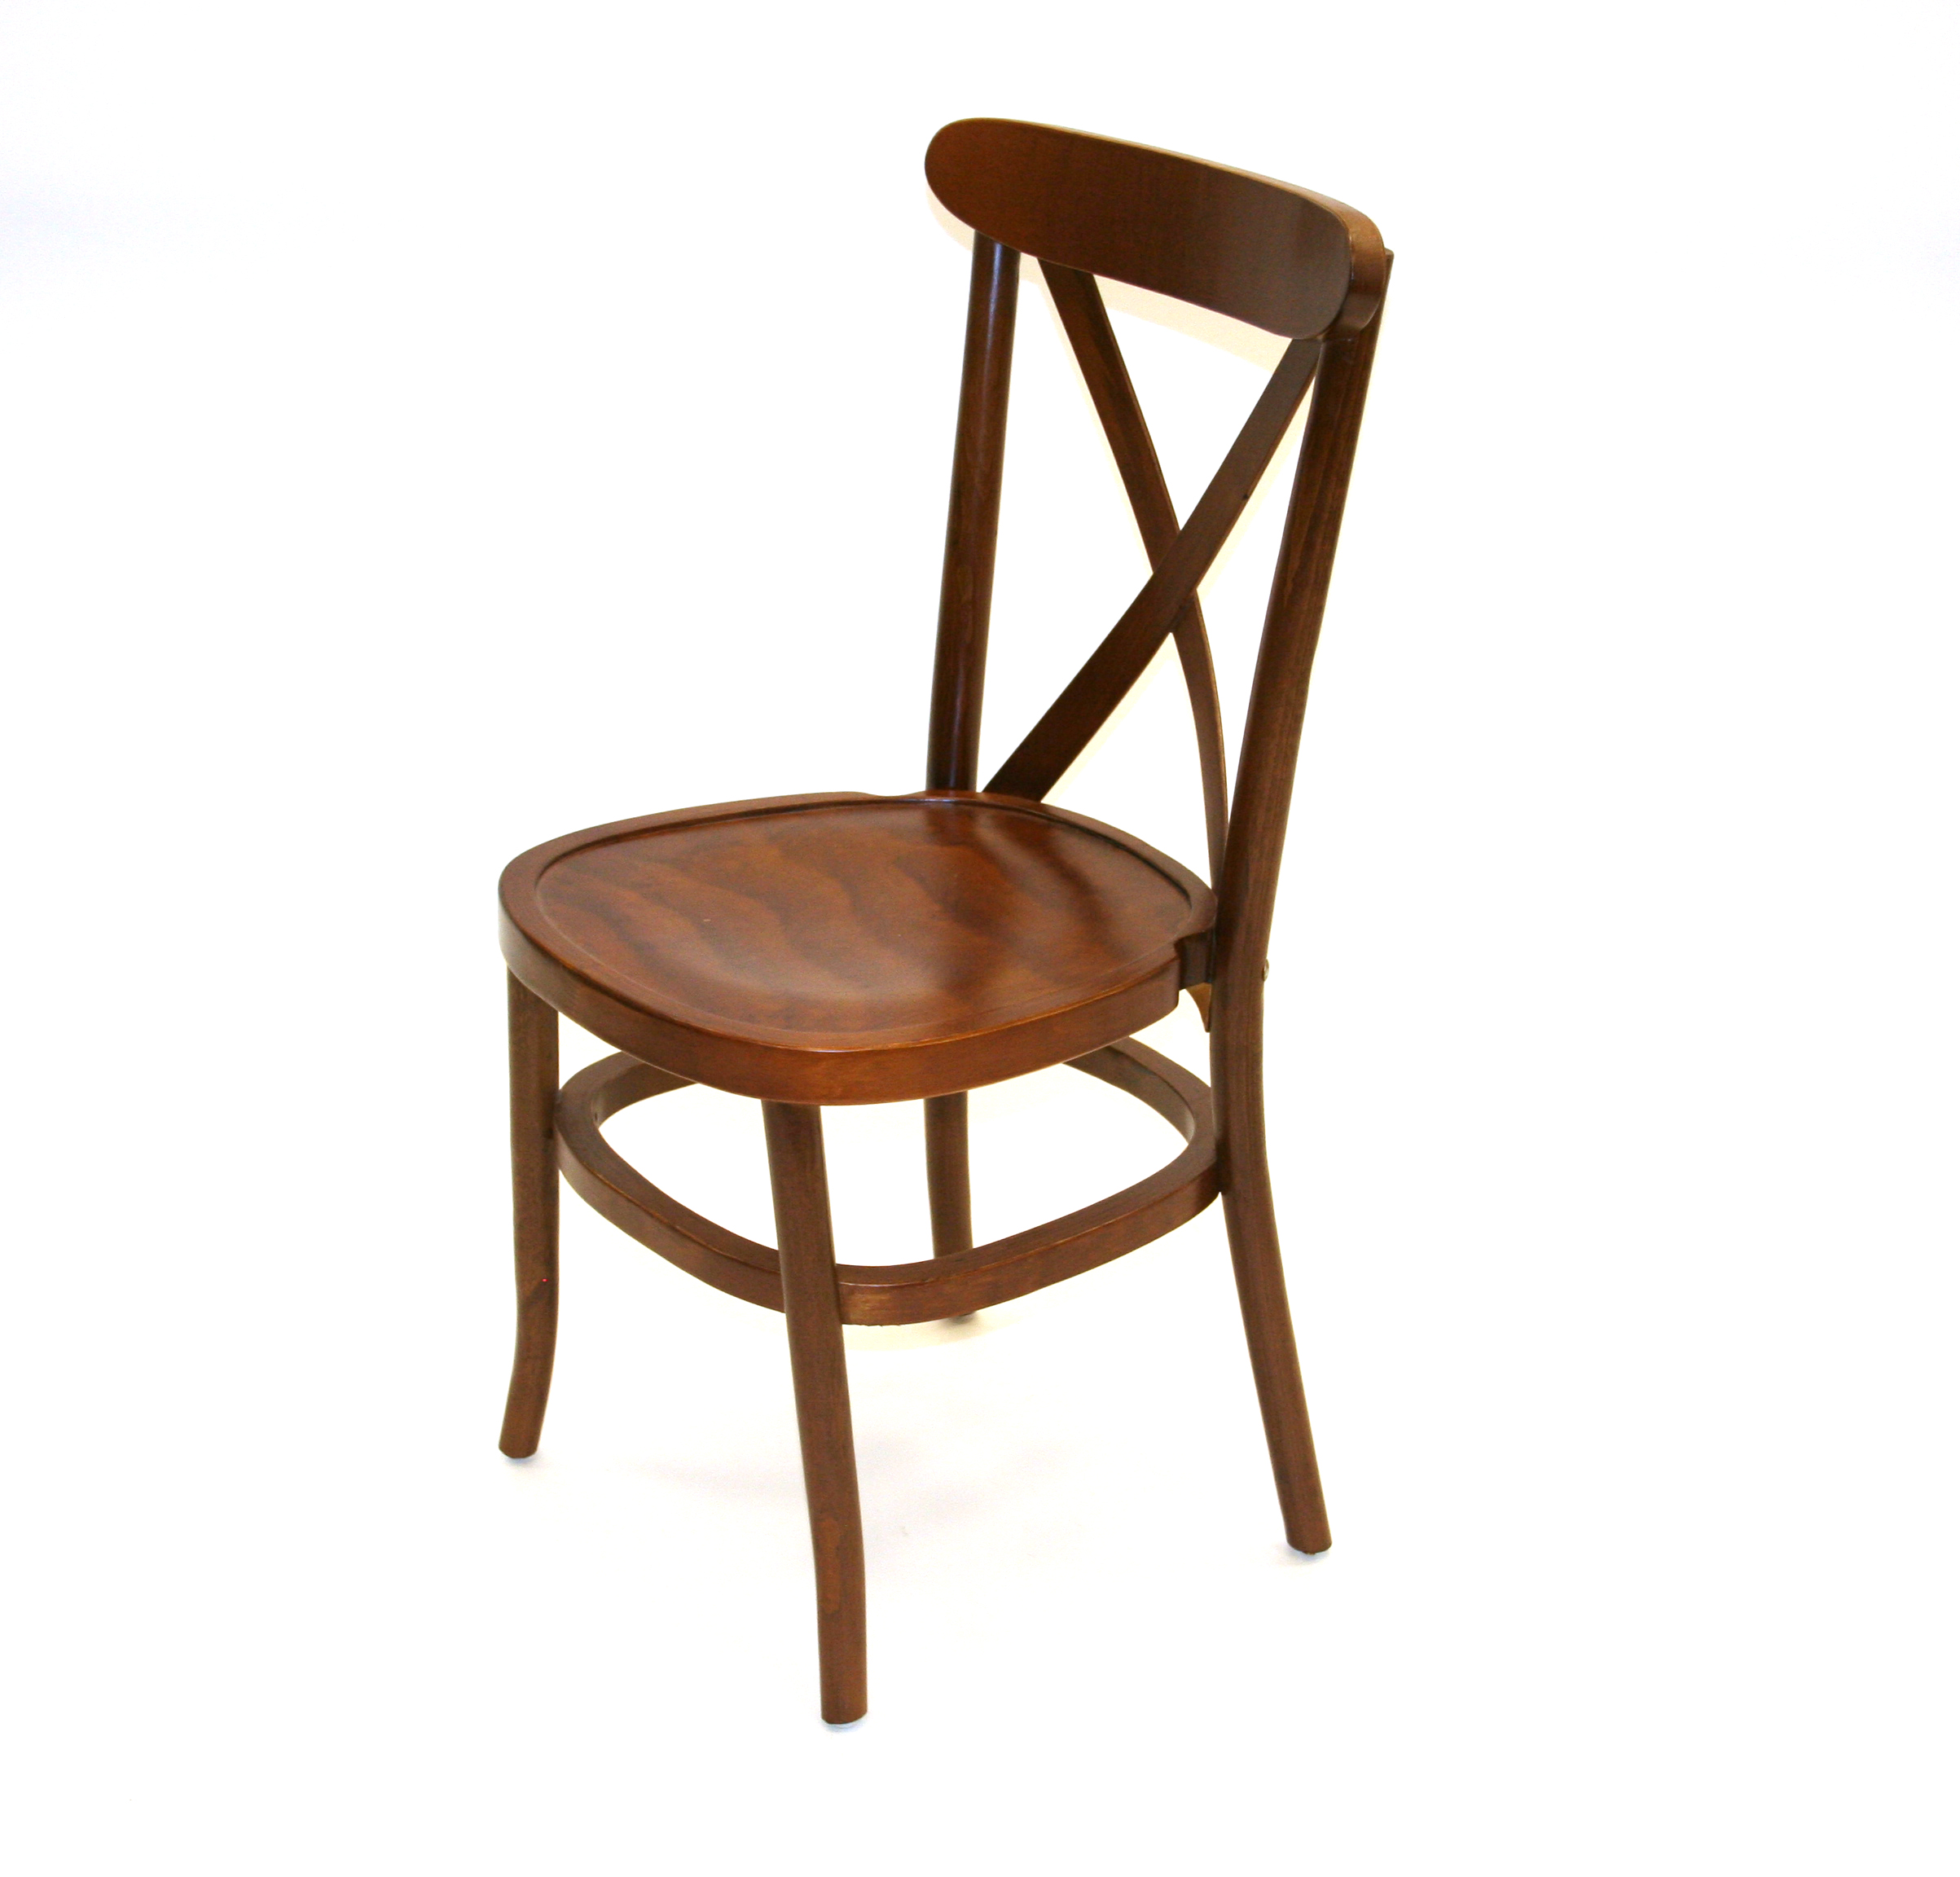 Beau Traditional Wooden Crossback Chairs